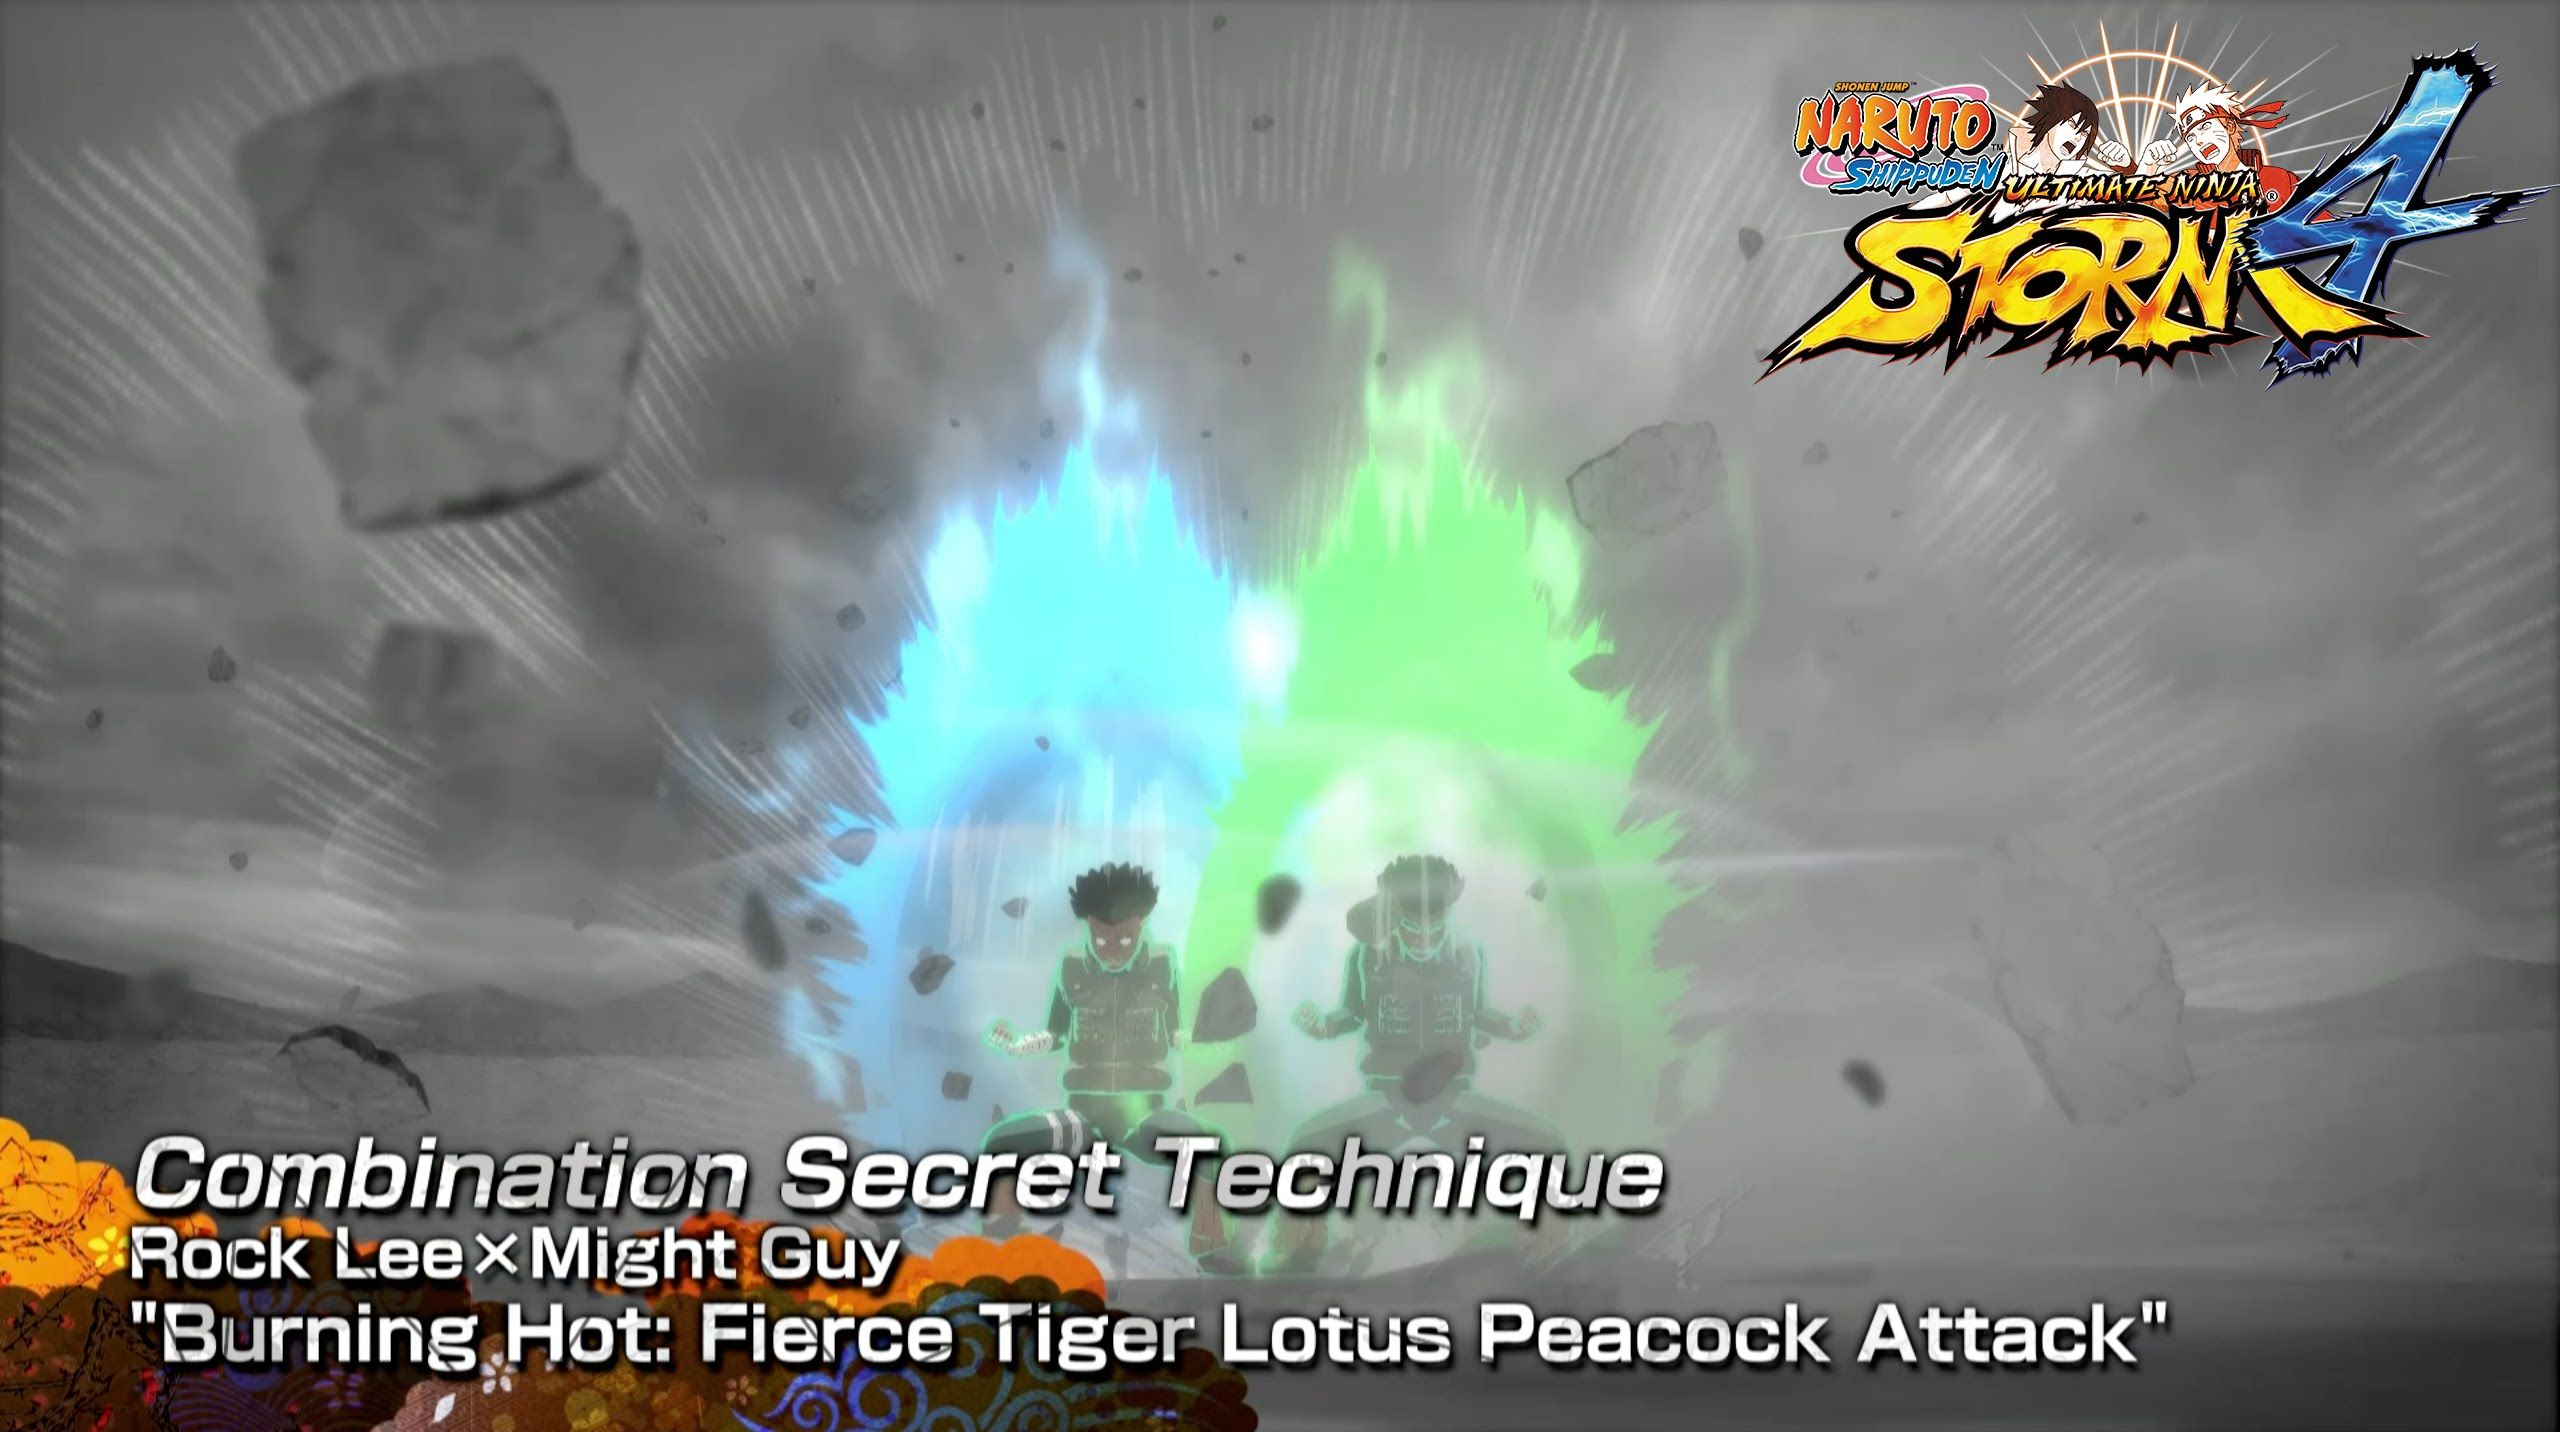 awesome Naruto Shippuden: Top Ninja Storm four - Gaara's Tale | PS4, XB1, Laptop Check more at http://videogamesspace.com/naruto-shippuden-top-ninja-storm-four-gaaras-tale-ps4-xb1-laptop/